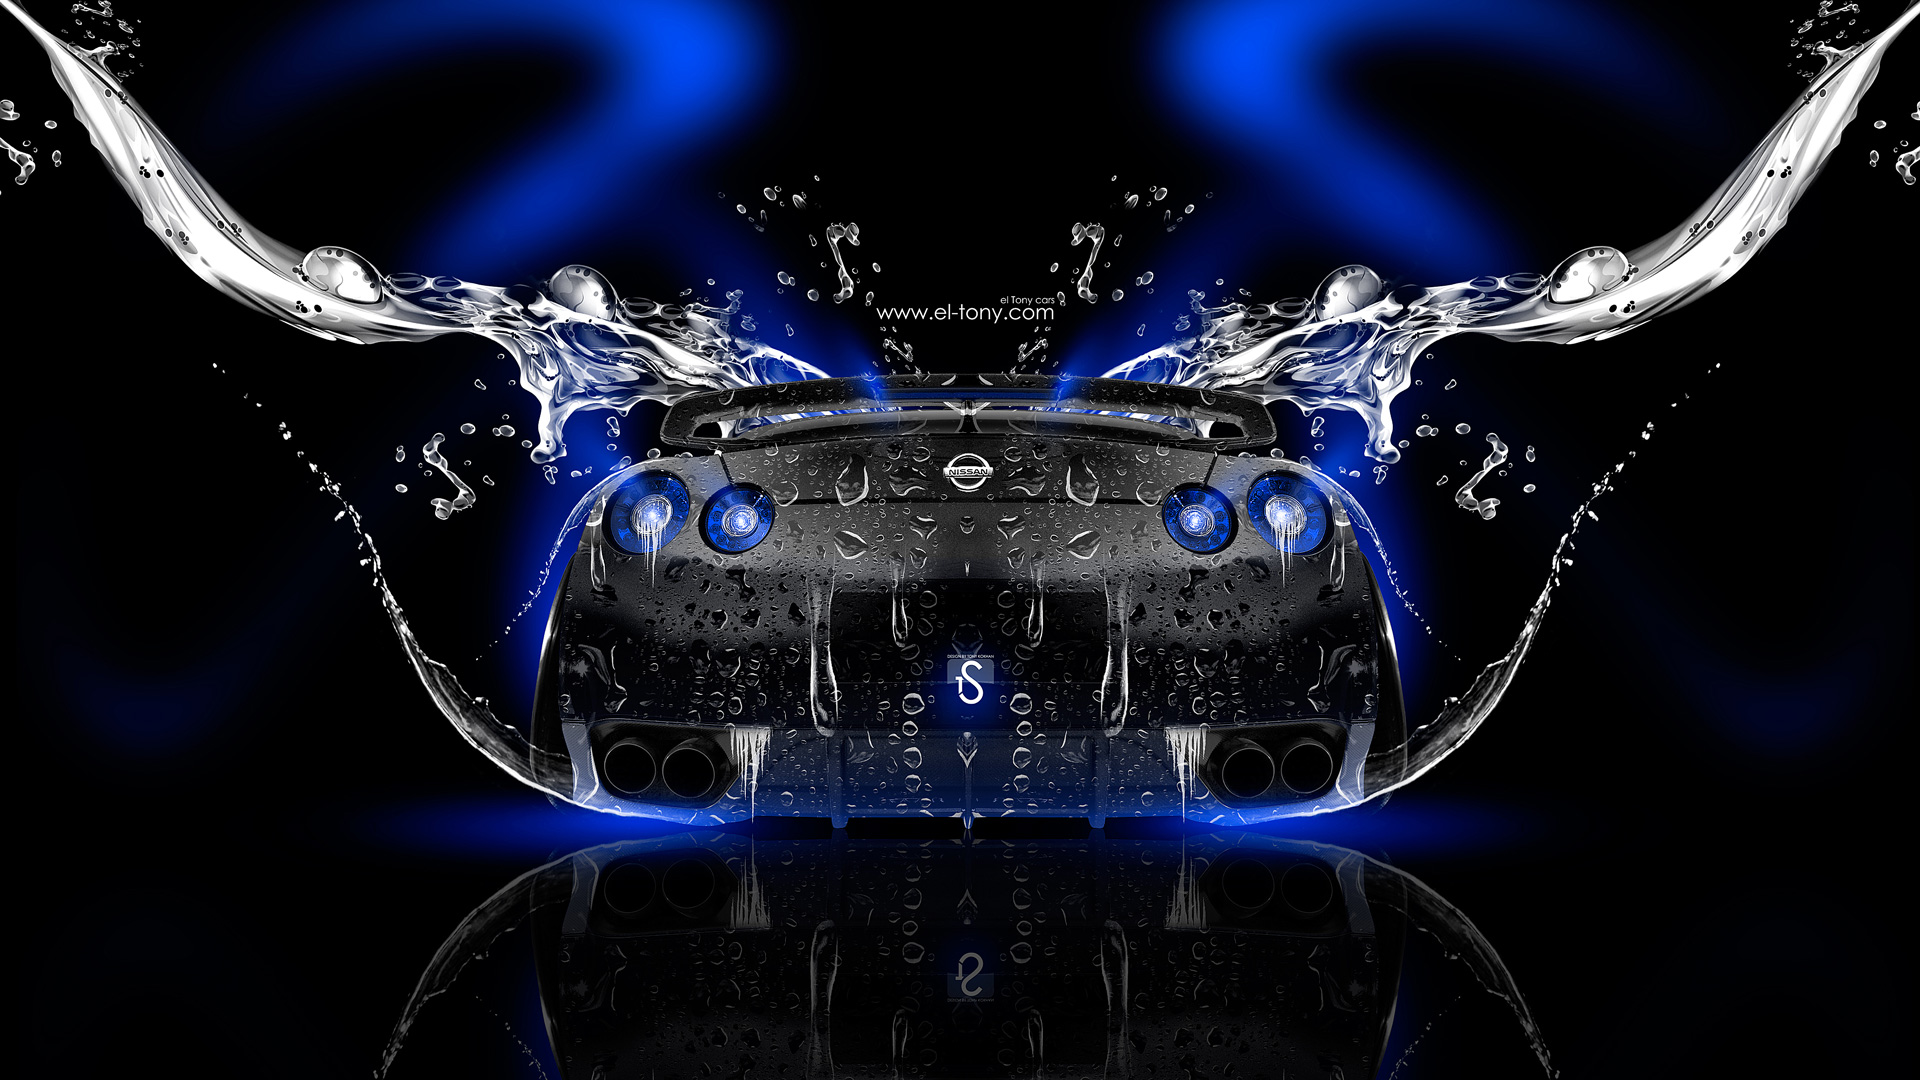 Delightful Nissan GTR R35 Back Water Car 2014 Blue